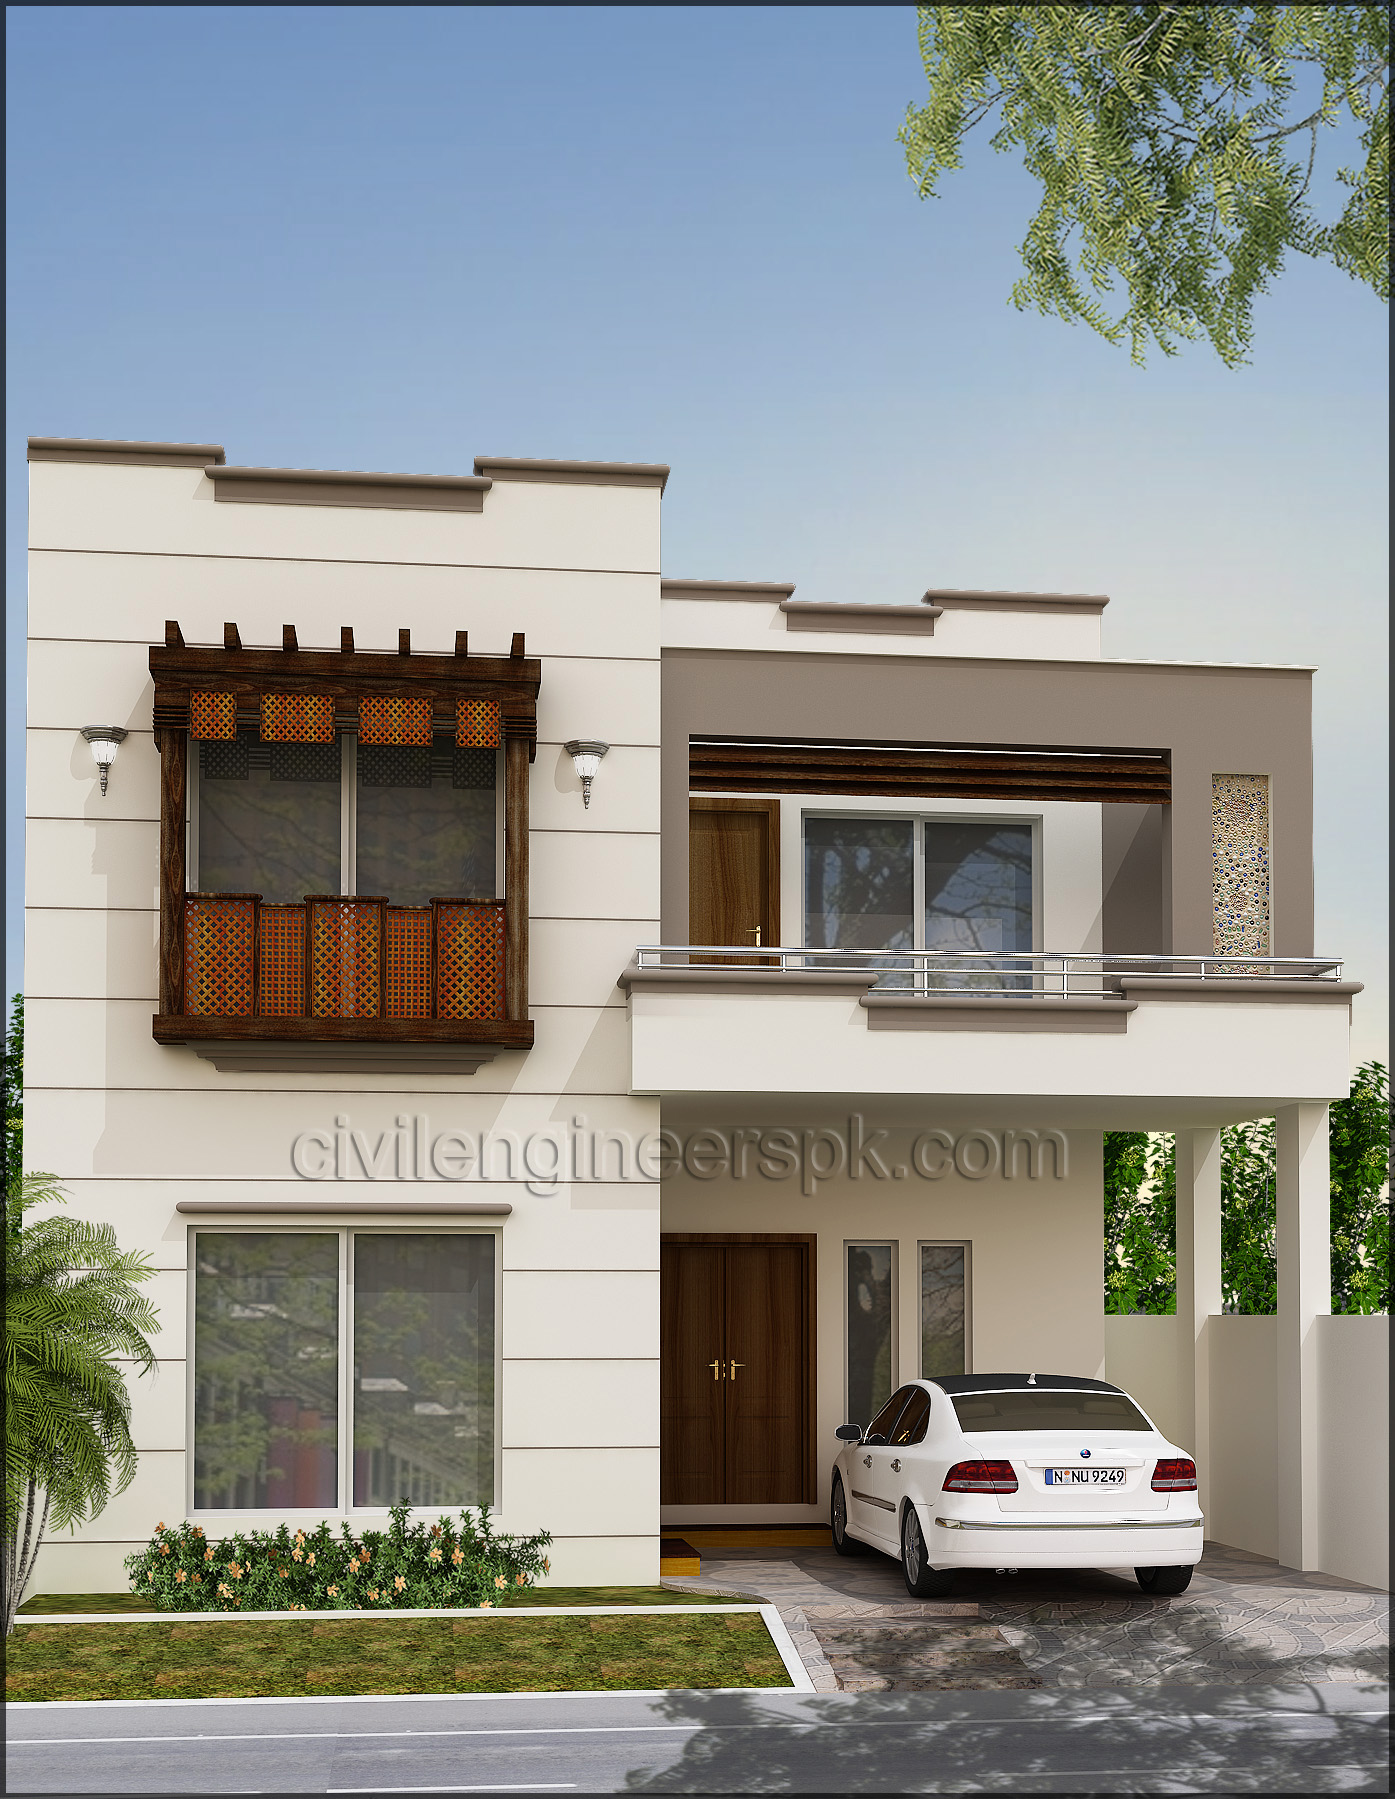 Front Elevation Of Houses : House front views civil engineers pk